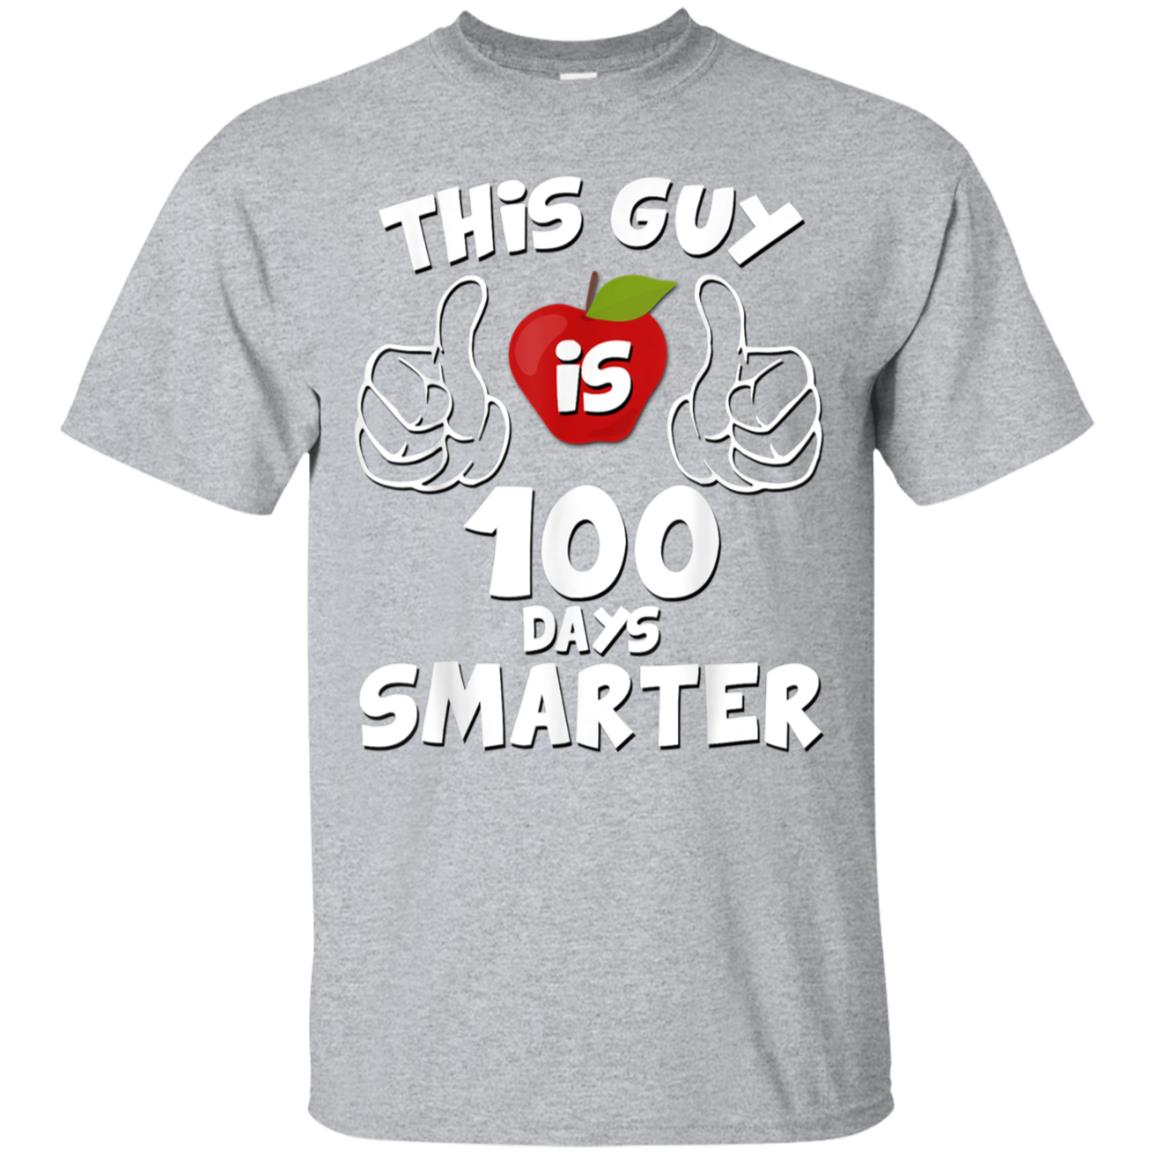 100 Days of School Shirt This Guy is 100 Days Smarter Gift 99promocode